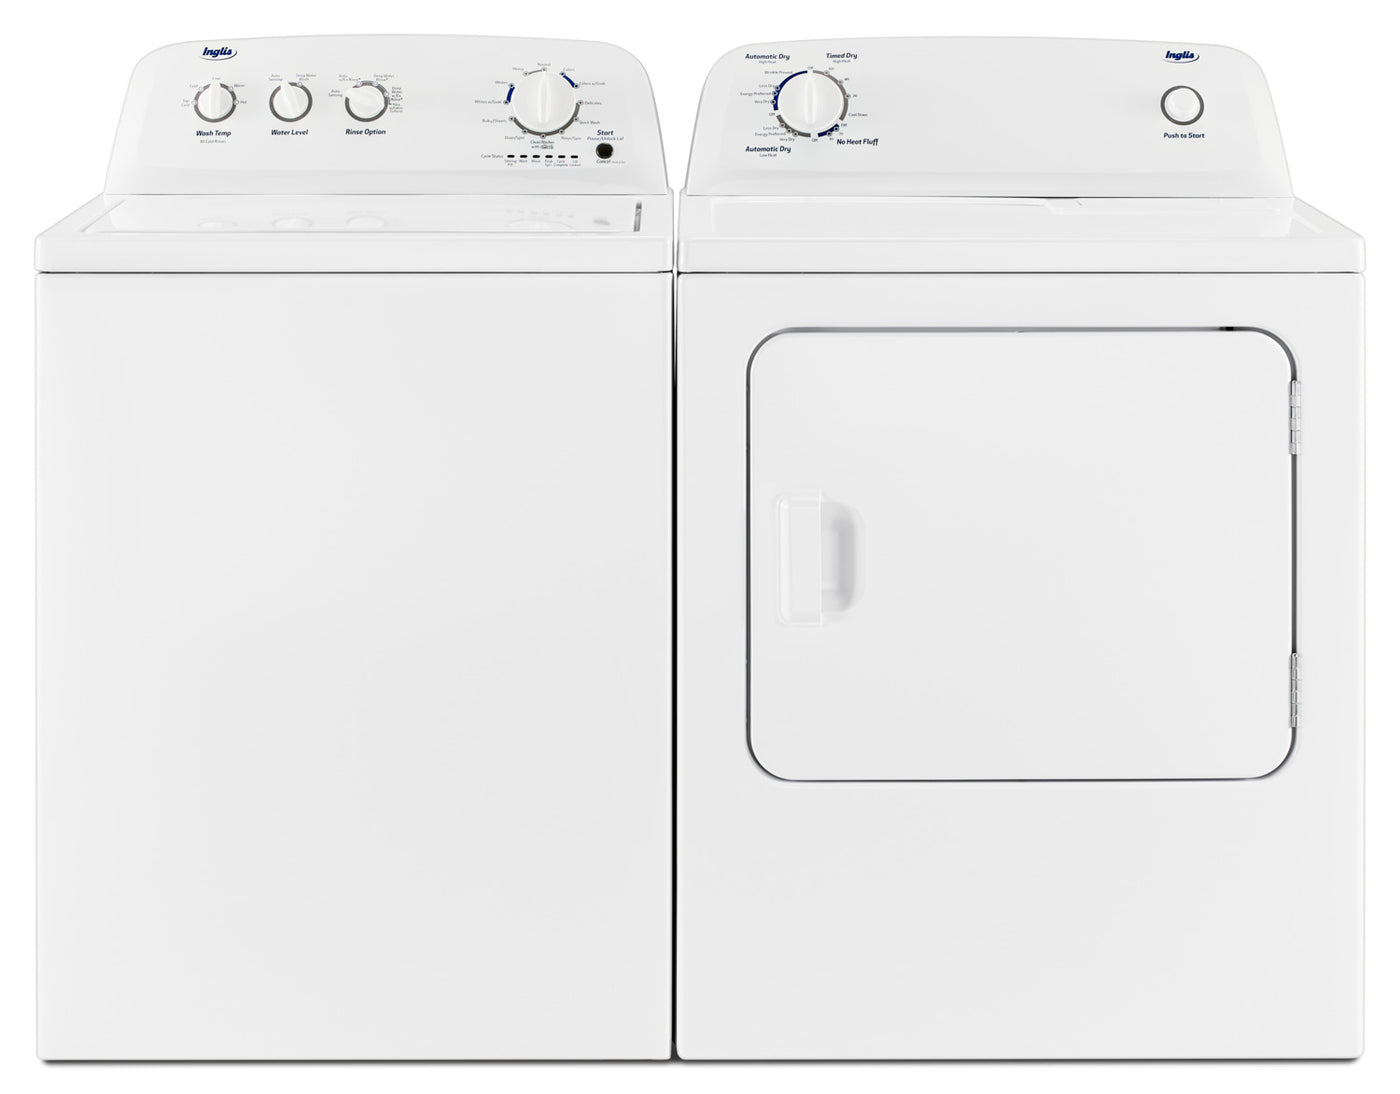 Inglis 4 4 Cu  Ft  I E C  Top-Load Washer and 6 5 Cu  Ft  Electric Dryer –  White